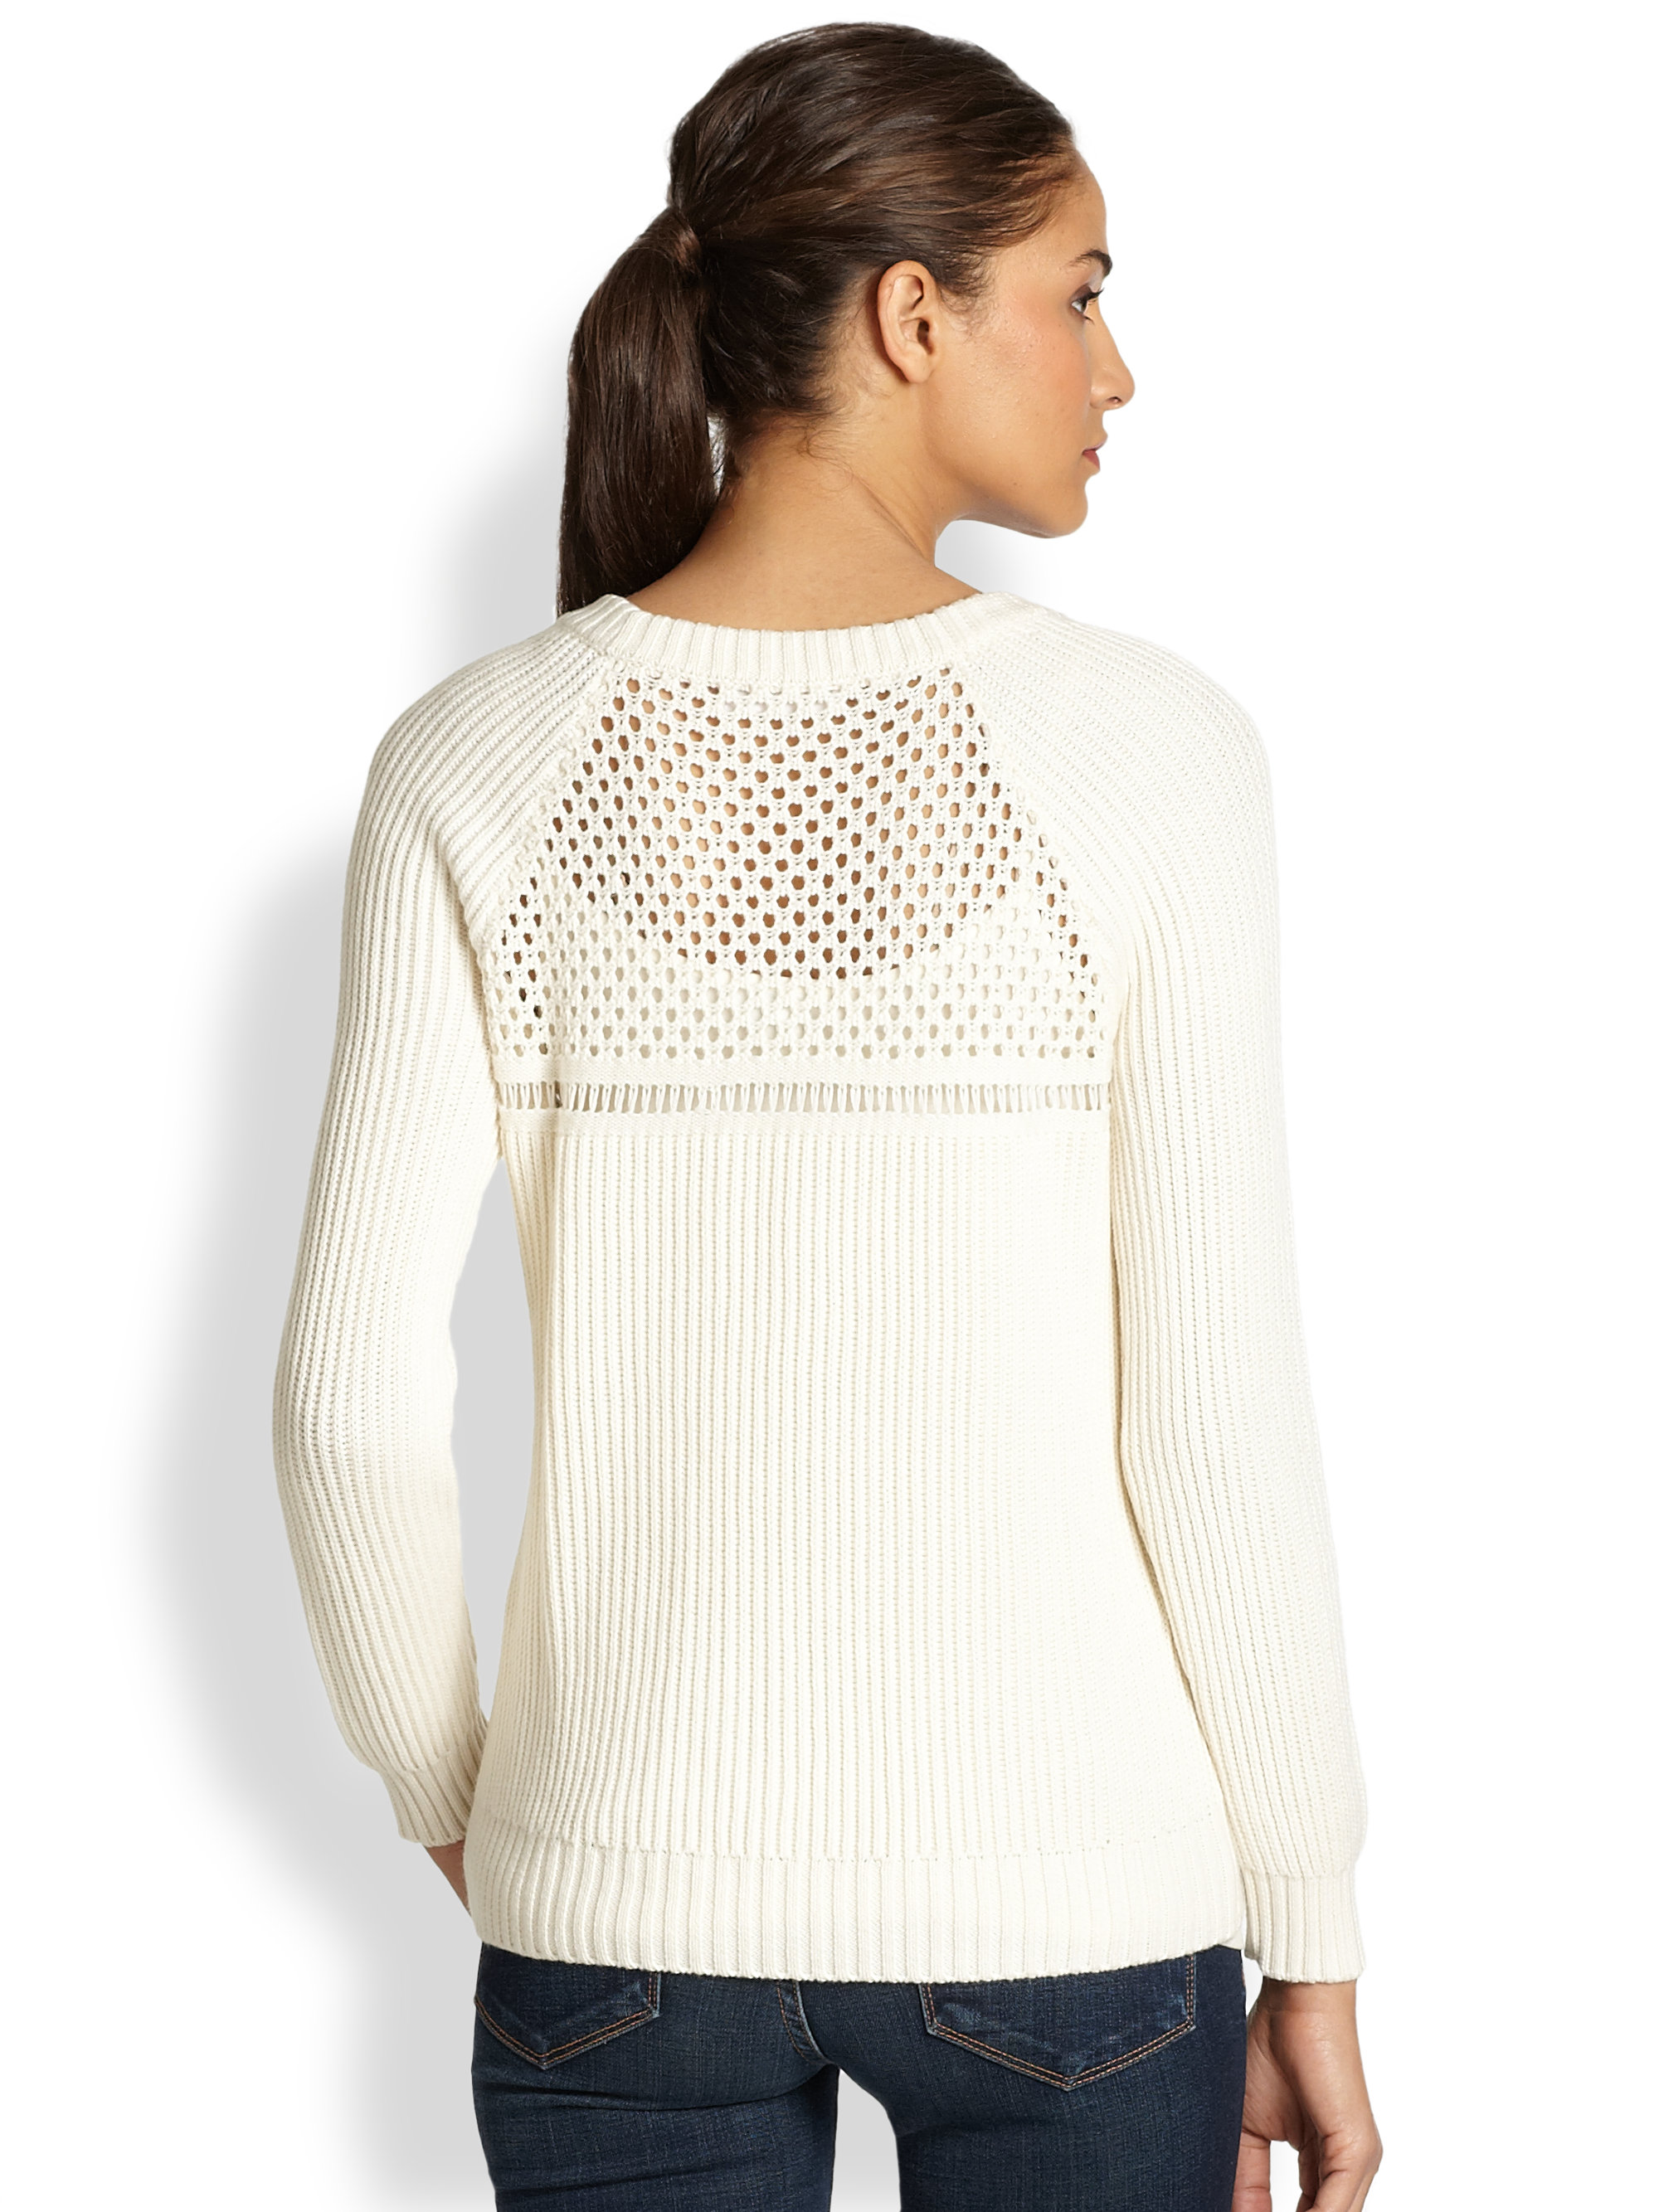 Milly Wool Cotton Fisherman Sweater in Natural | Lyst